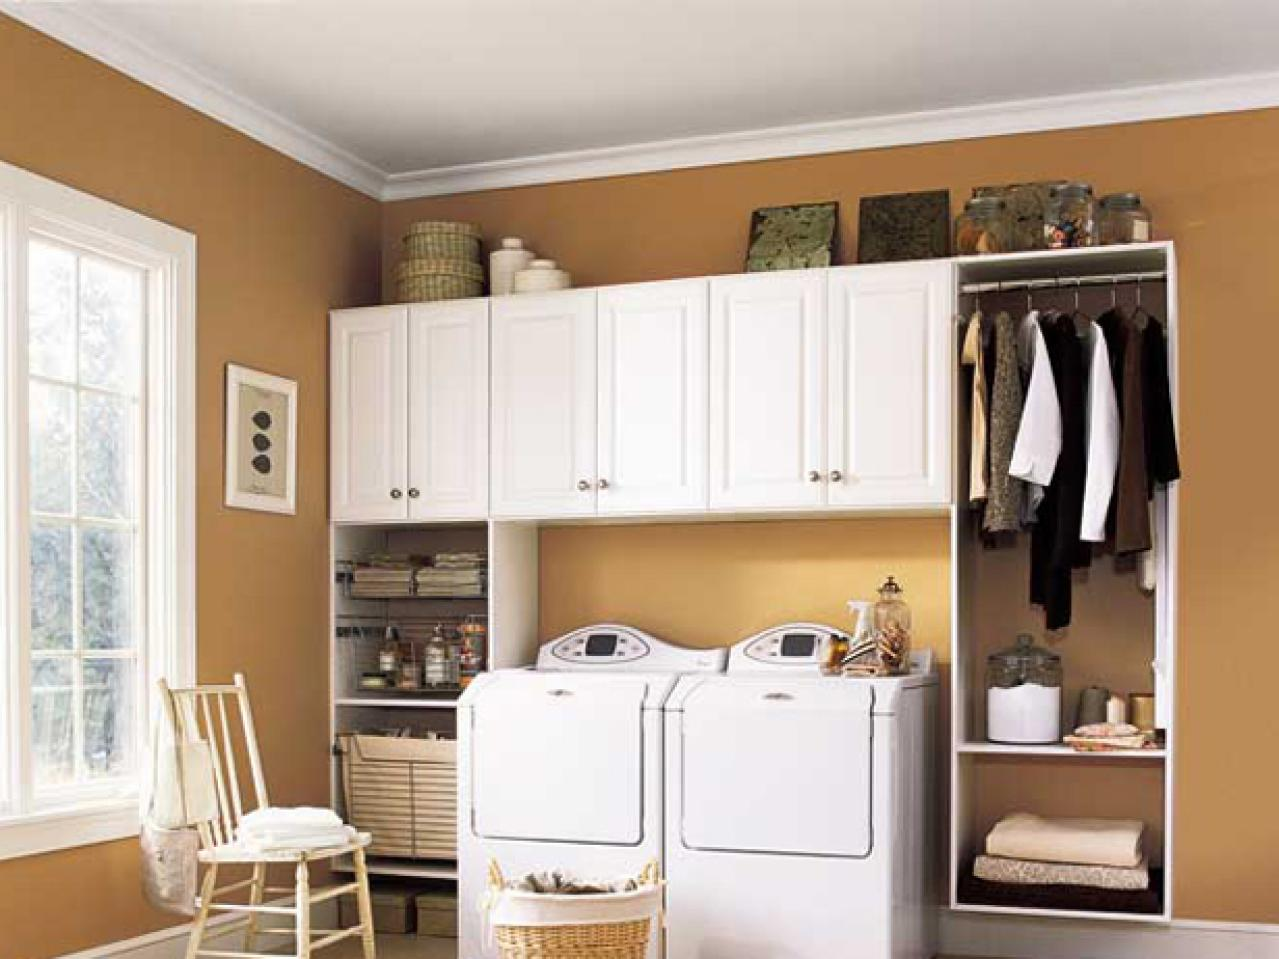 Laundry room storage ideas diy home decor and decorating - Laundry room design ideas ...